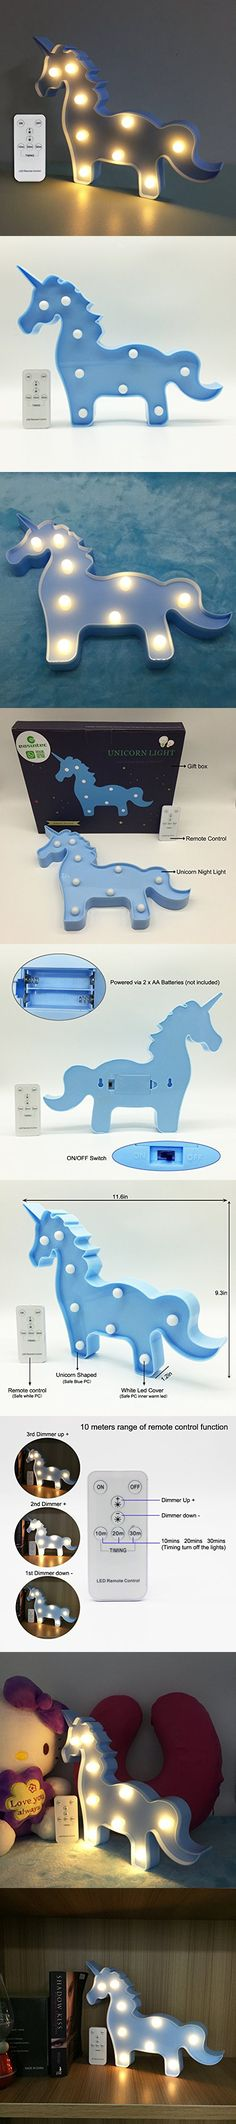 Night Lights for Kids Unicorn Led Night Light Remote with Dimmer Gifts for Kids or Gift Ideas or Baby Room Decor (Unicorn Blue)